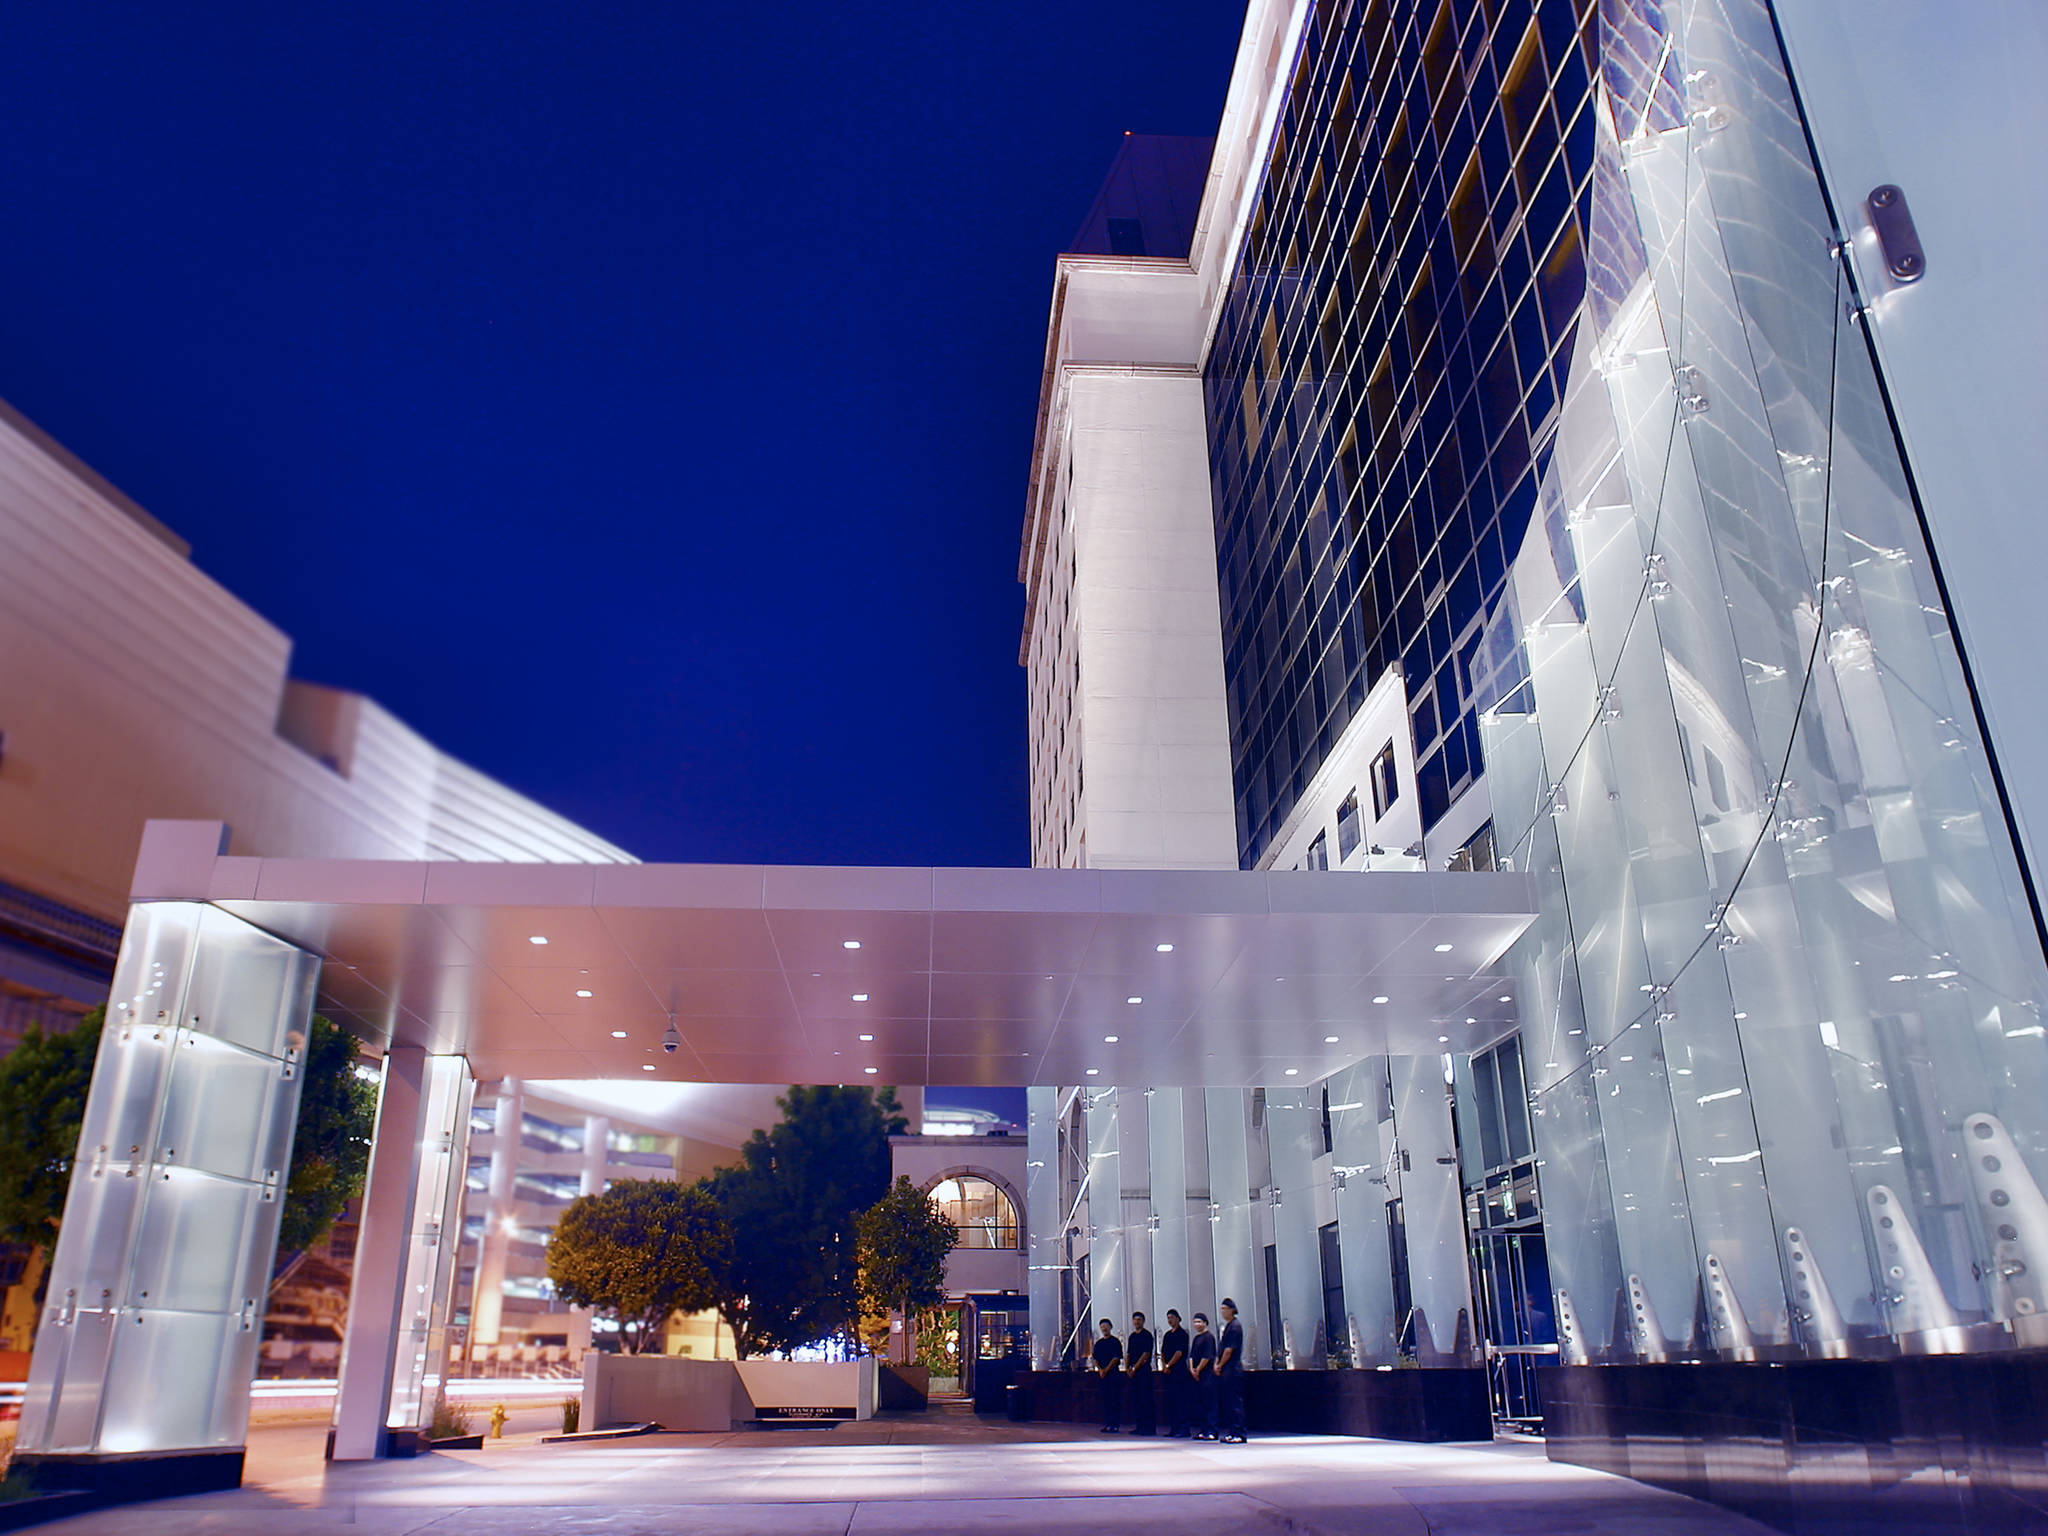 Hotel – Sofitel Los Angeles at Beverly Hills